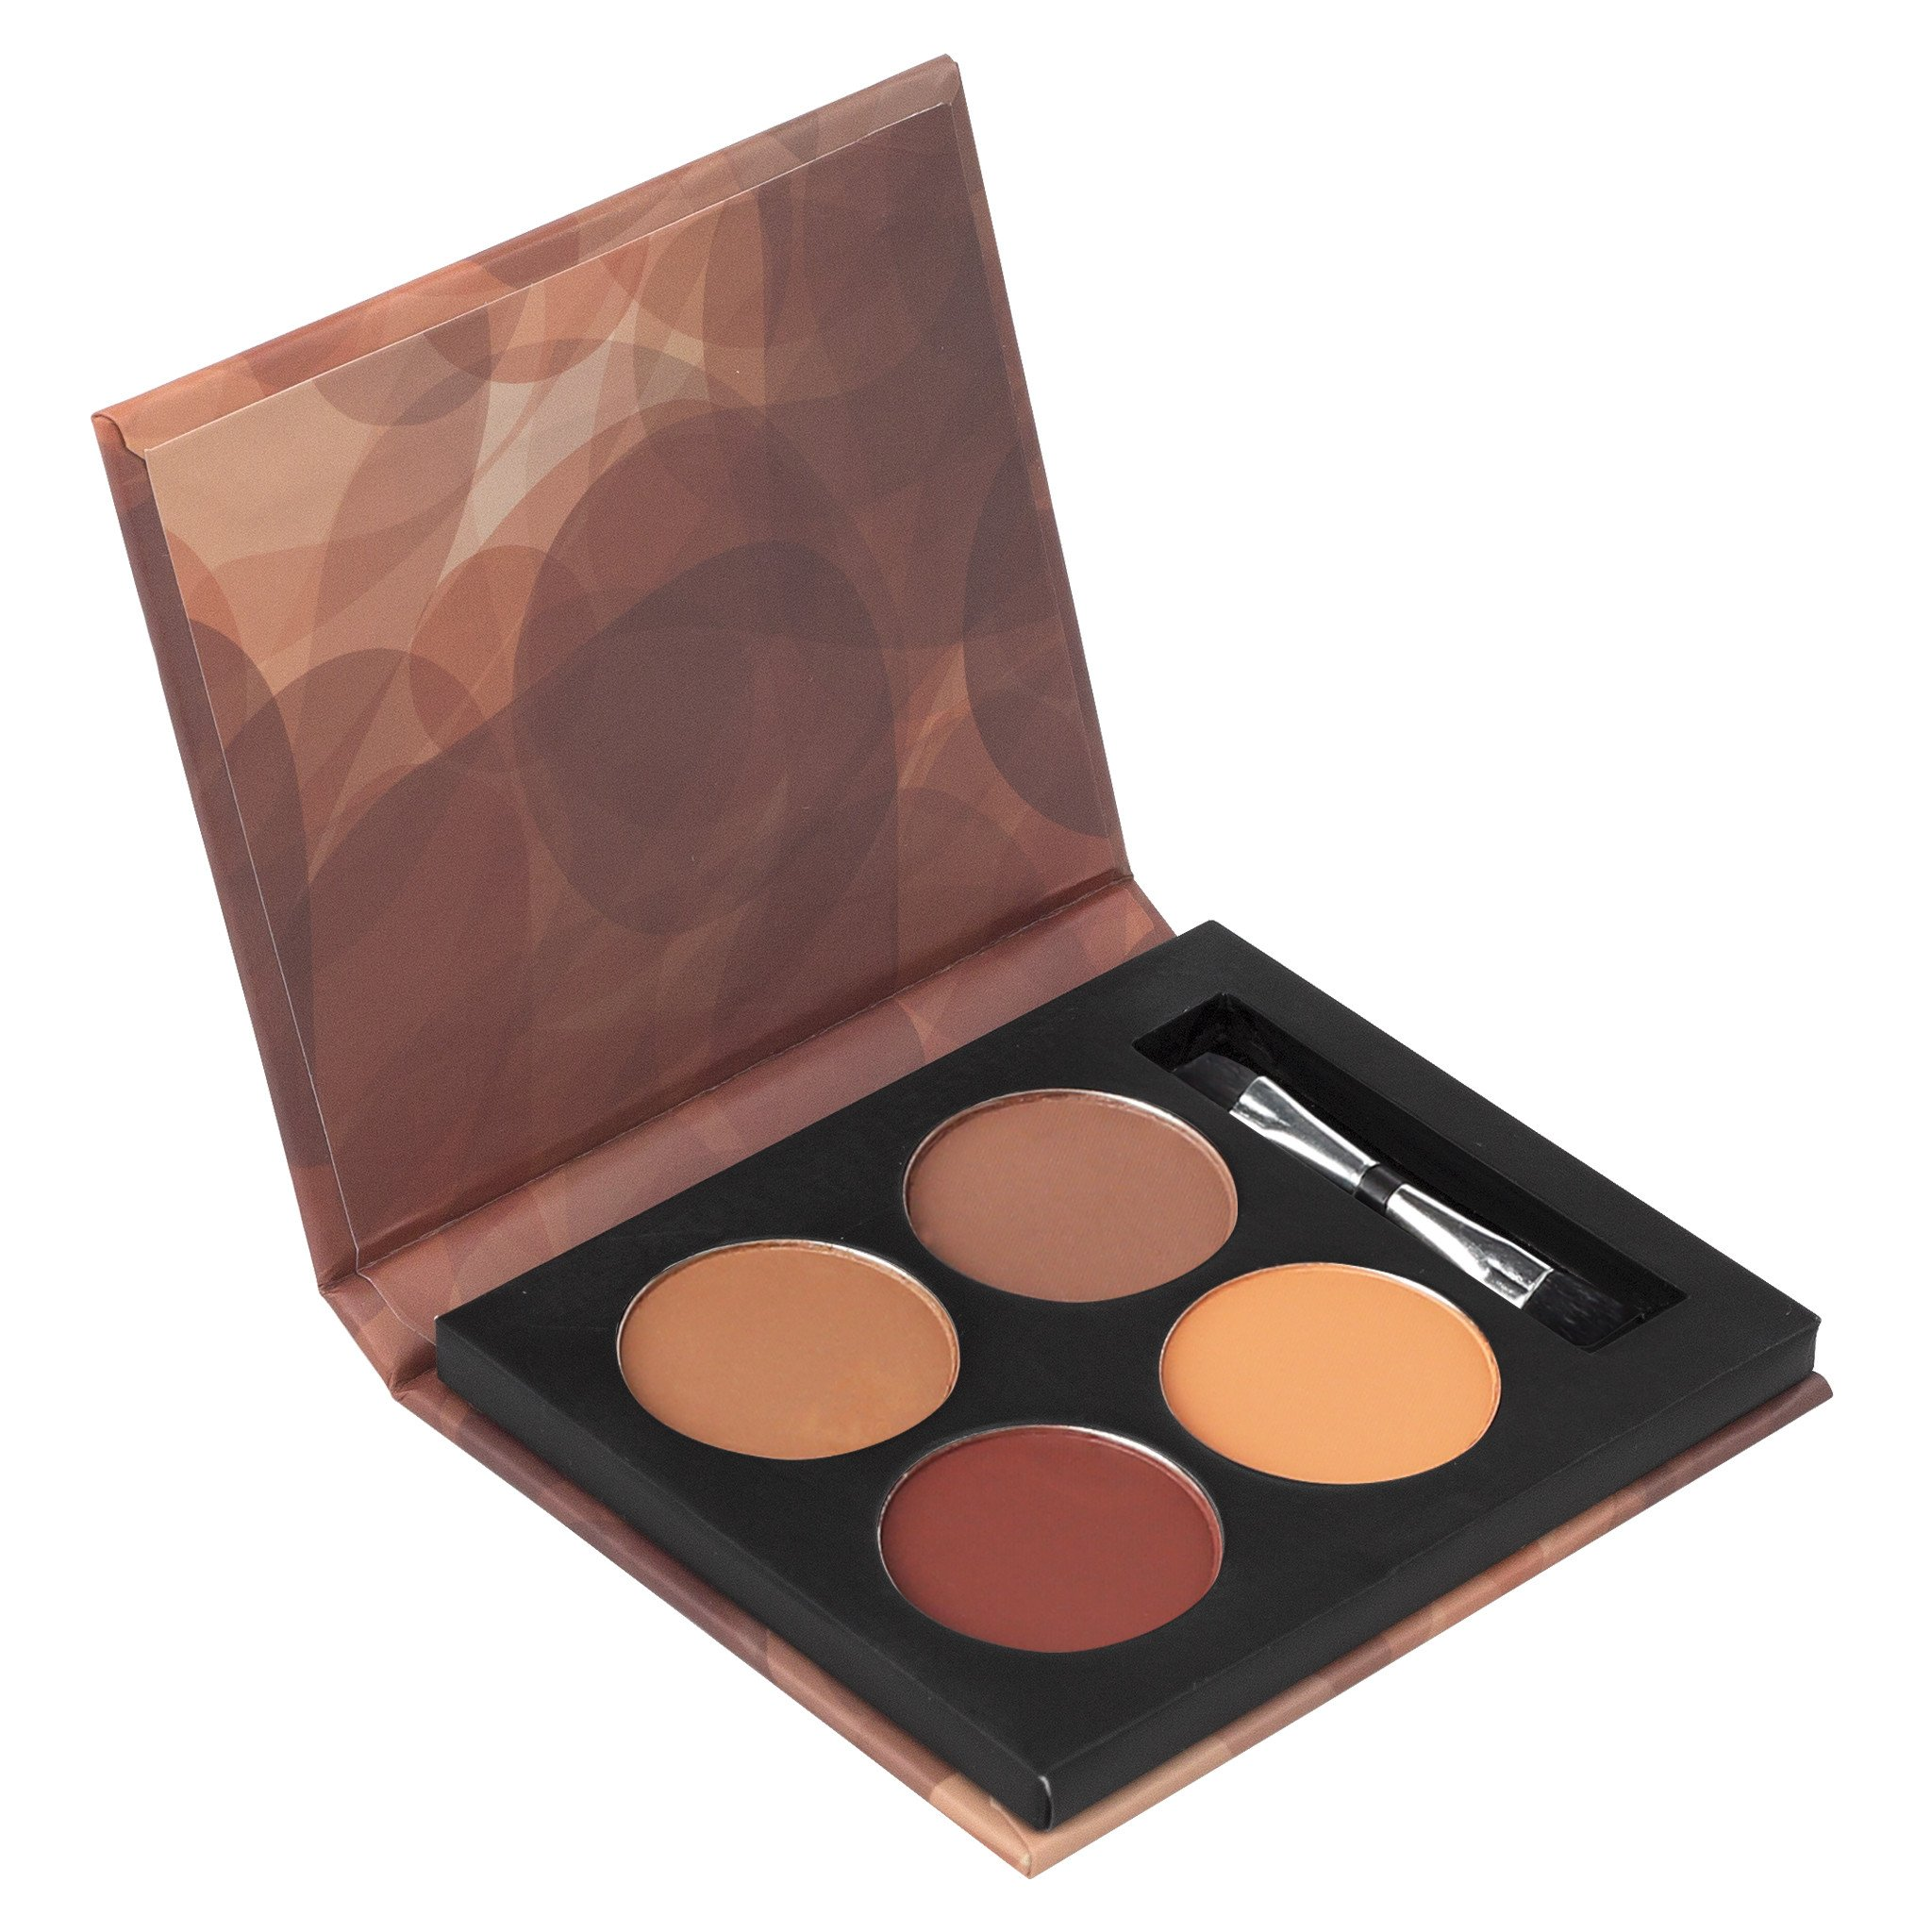 Brow Palette Image